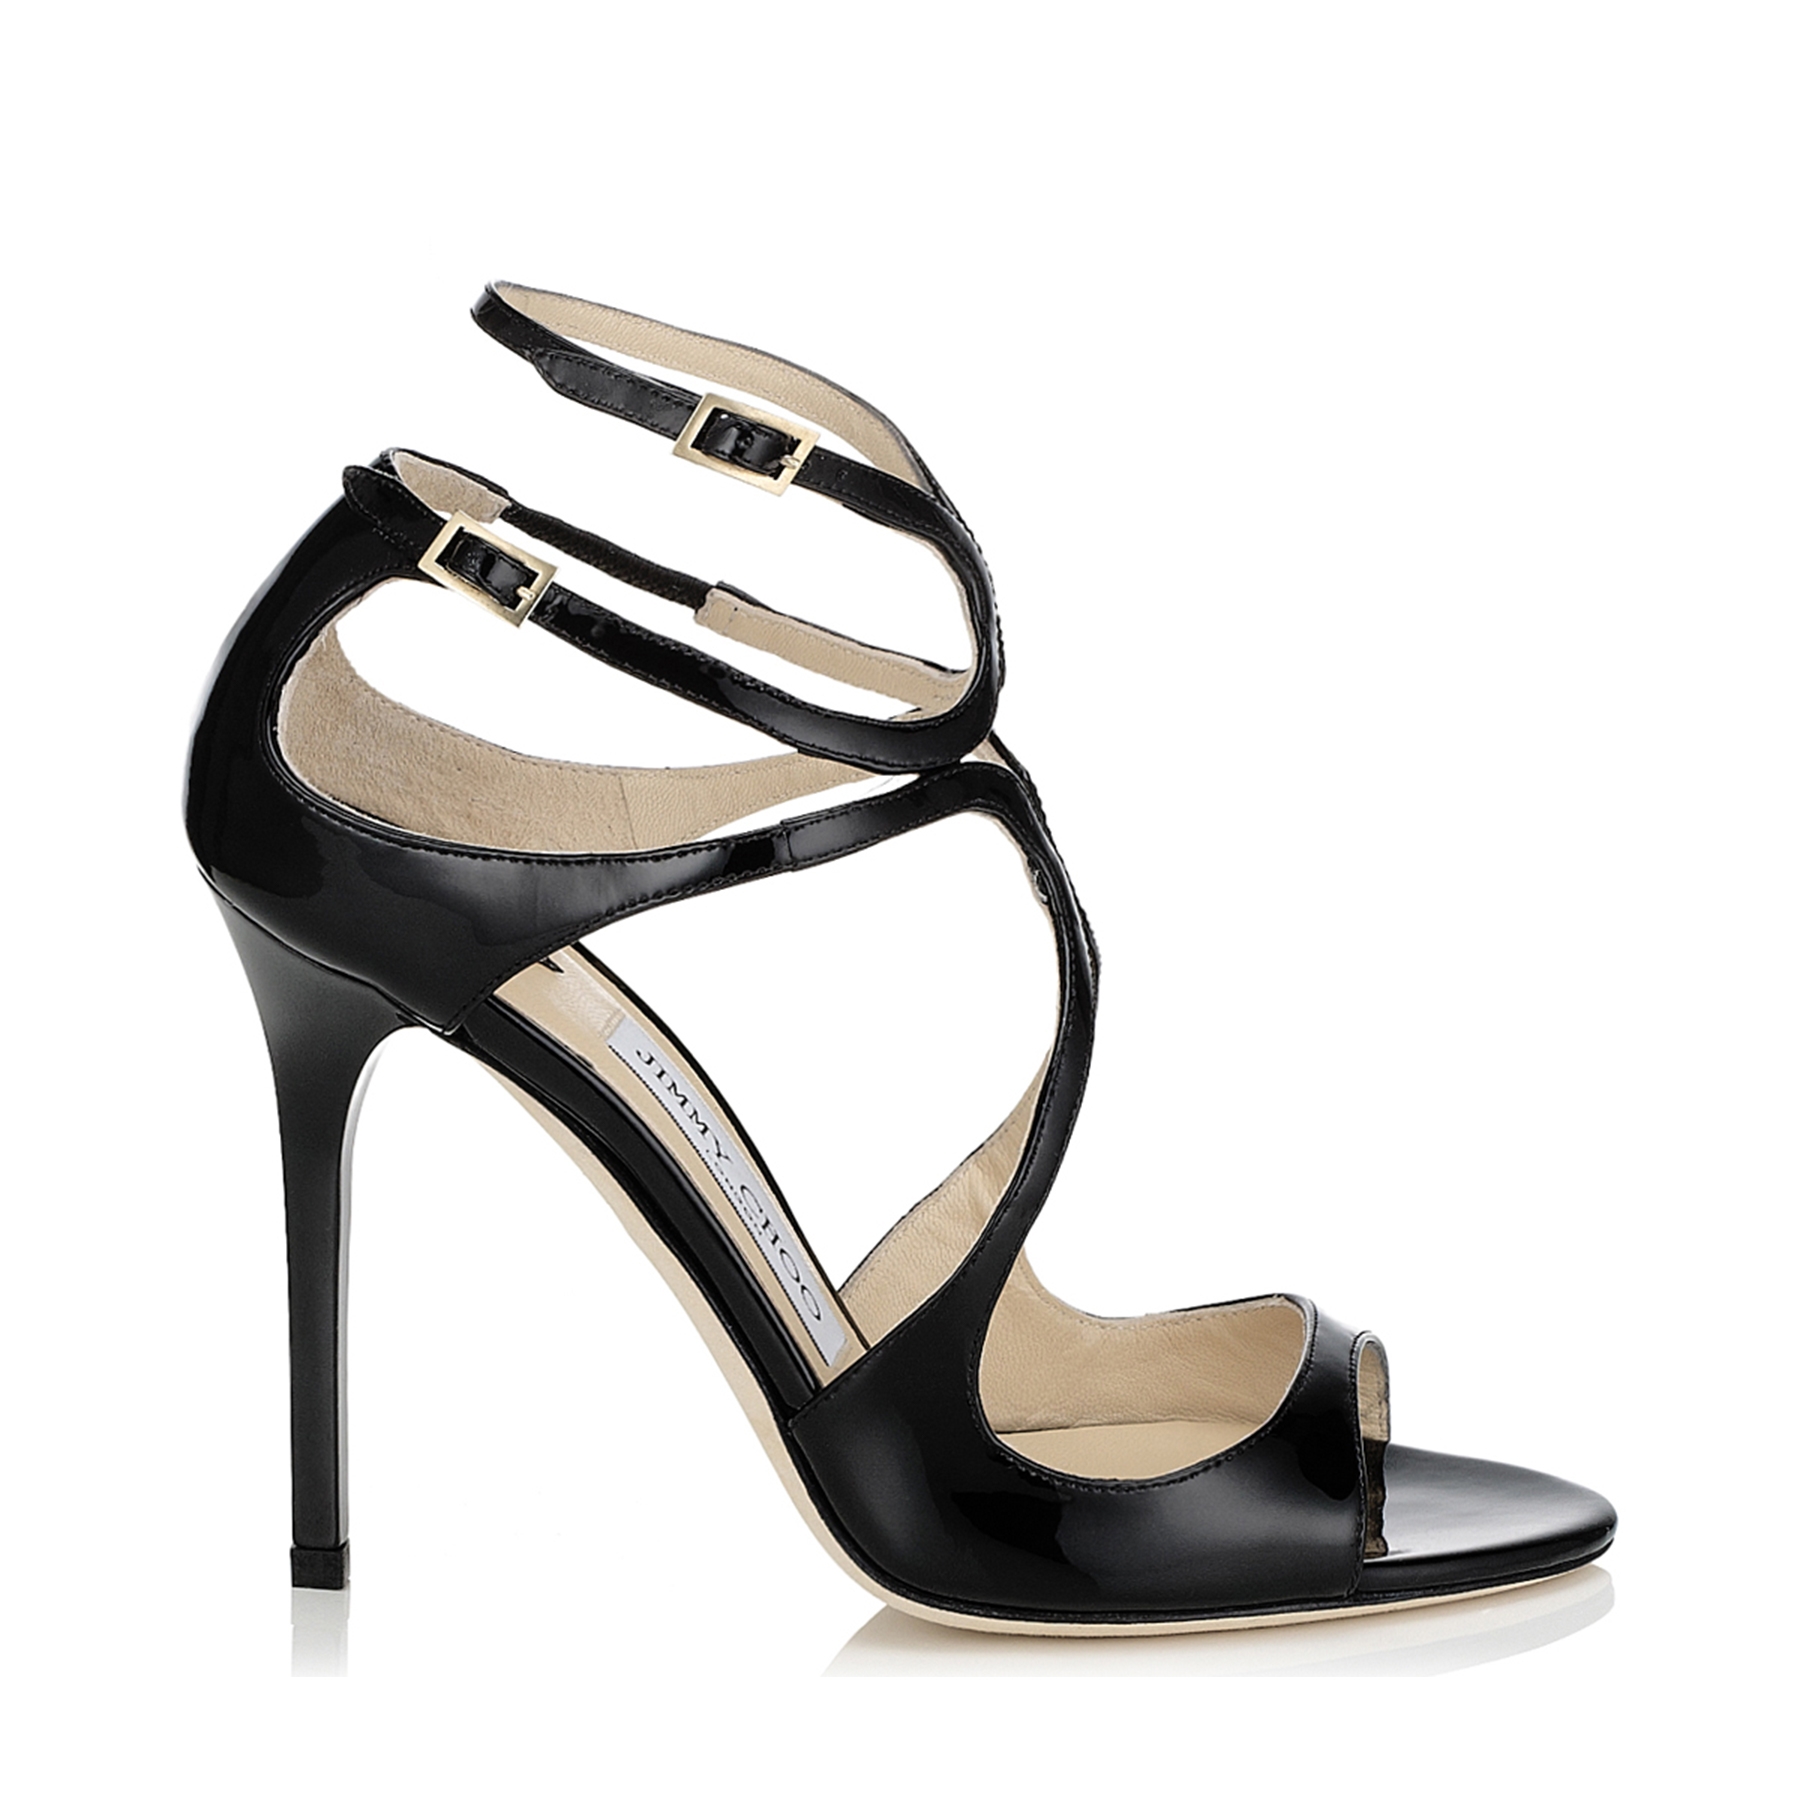 LANG Black Patent Strappy Sandals